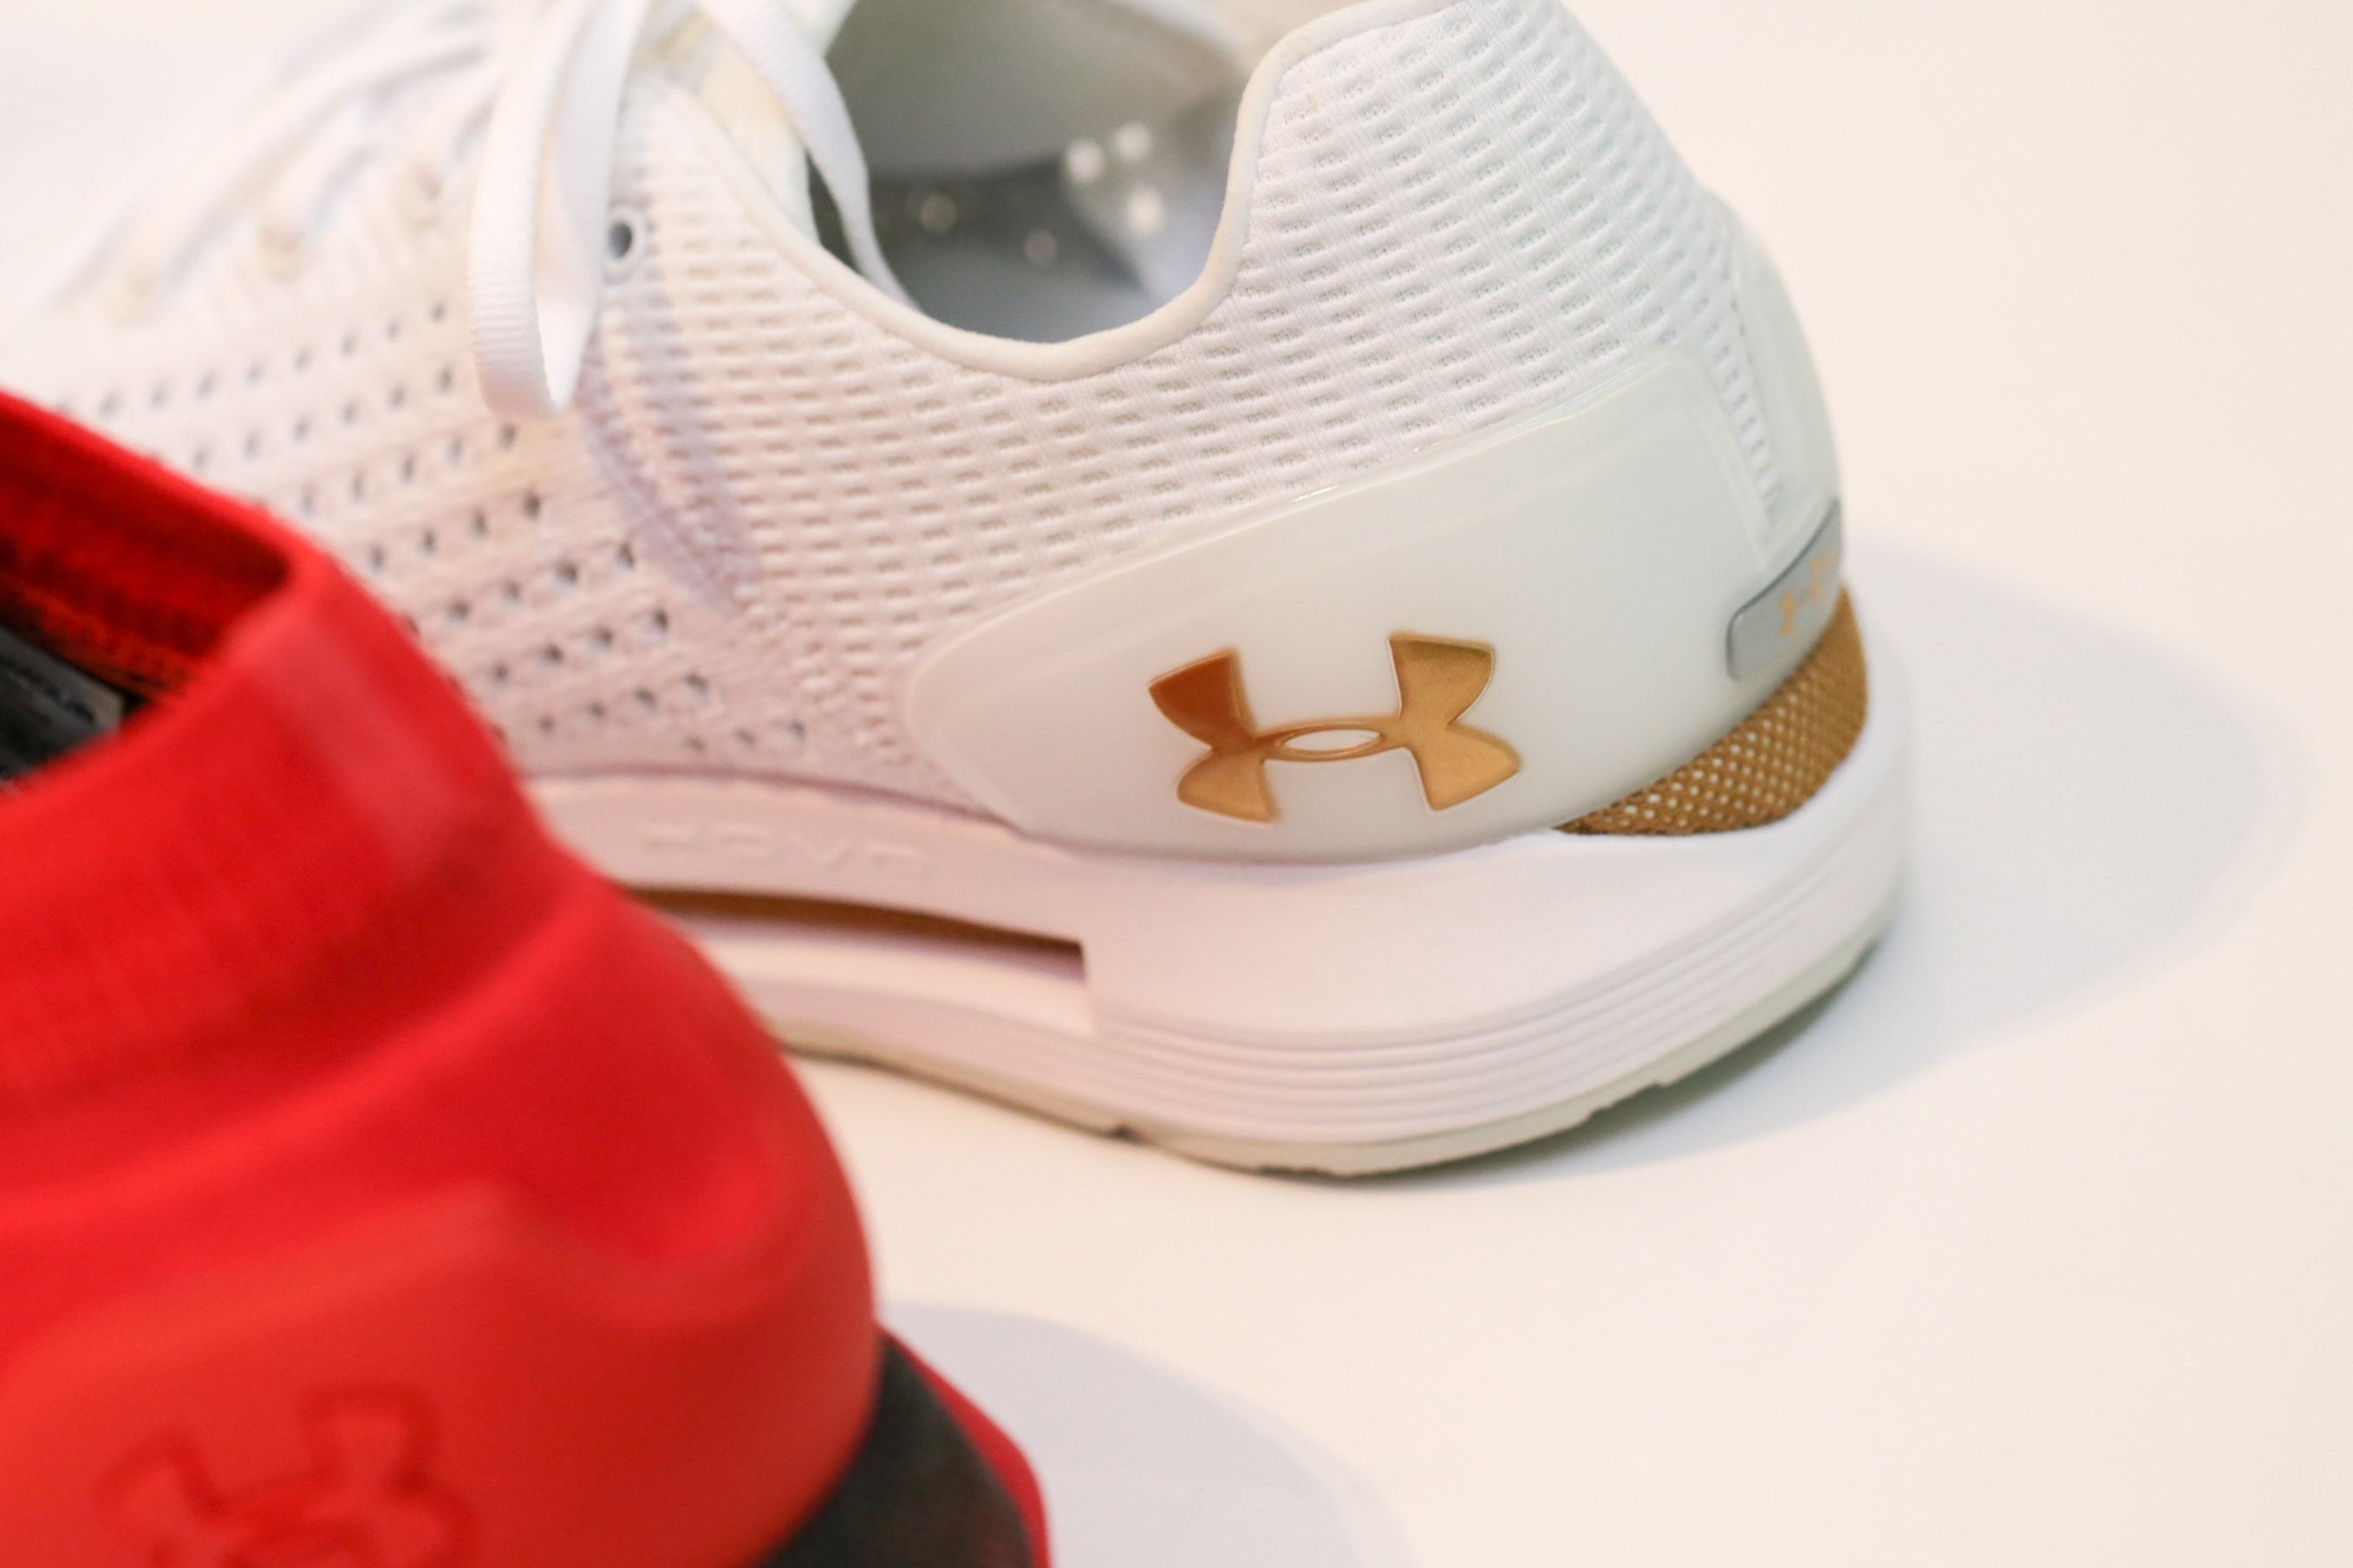 new products 124f2 5dde5 Under Armour launches two new pairs of connected running ...